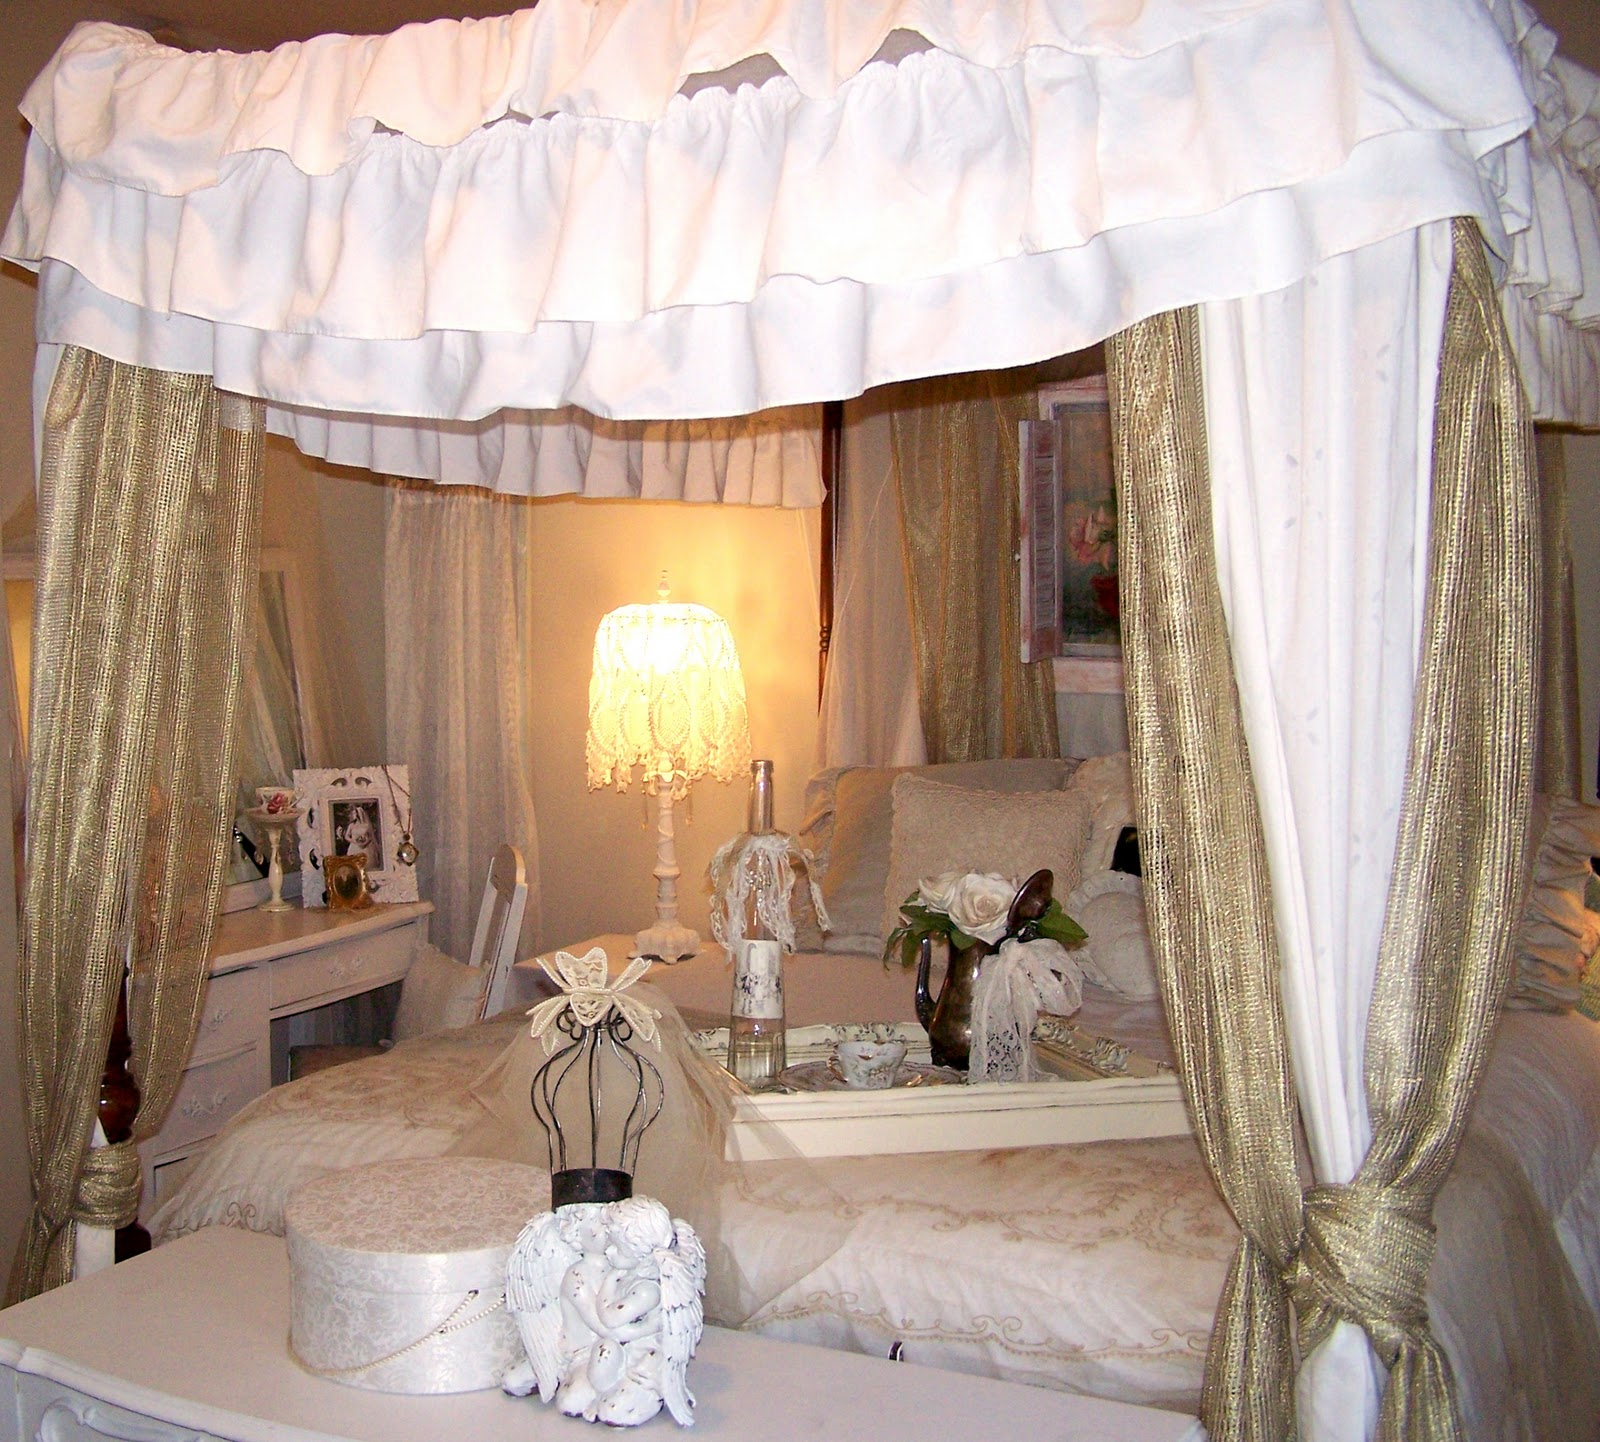 Shabby Chic Bedroom Before And After: Olivia's Romantic Home: Shabby Chic Bedroom Boudoir Update